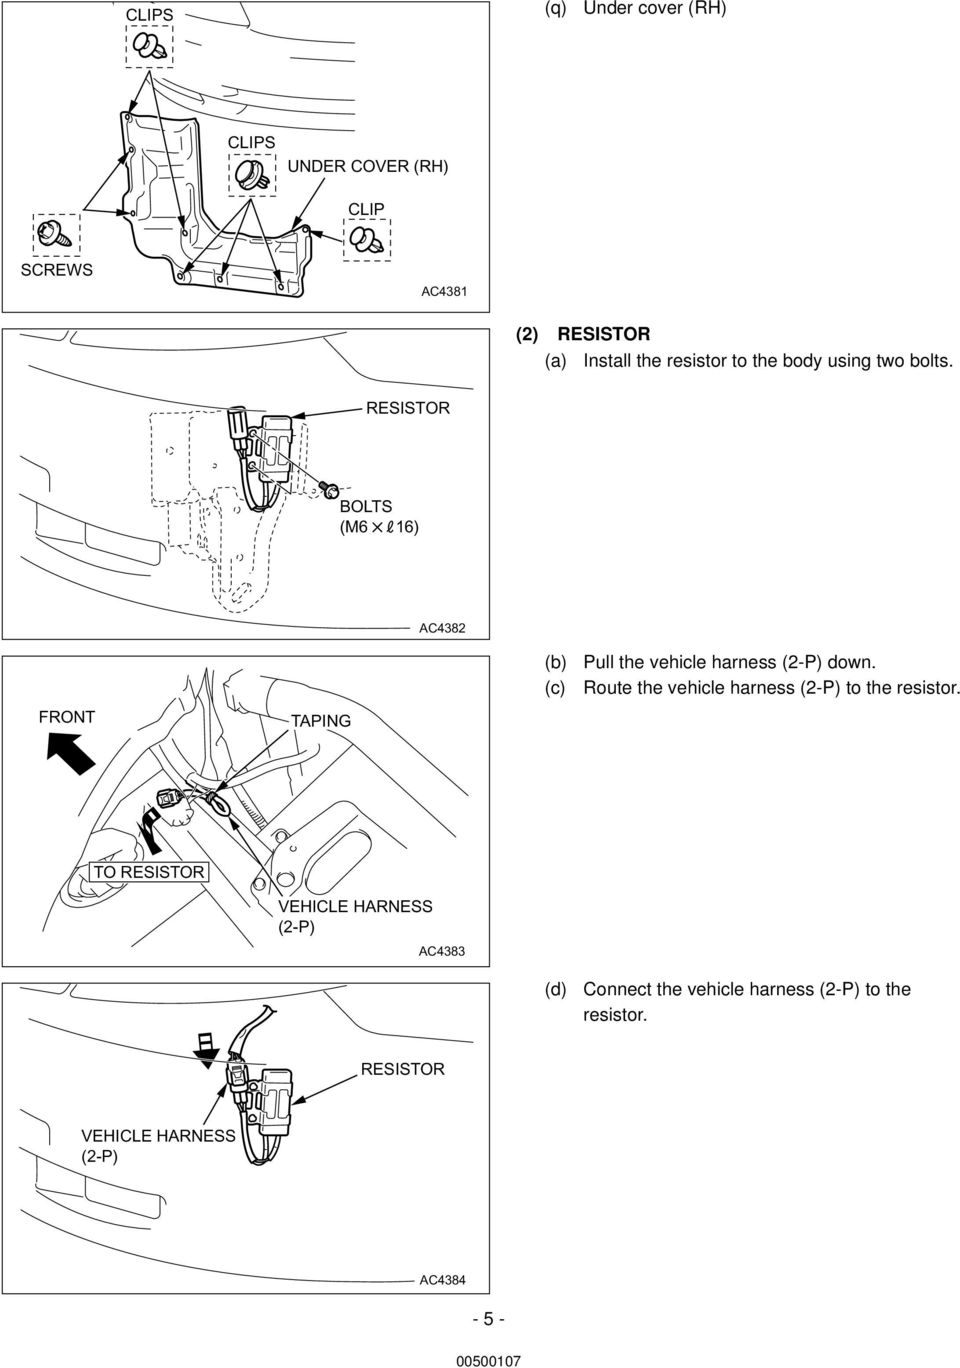 RESISTOR BOLTS (M6 16) AC4382 (b) (c) Pull the vehicle harness (2-P) down.